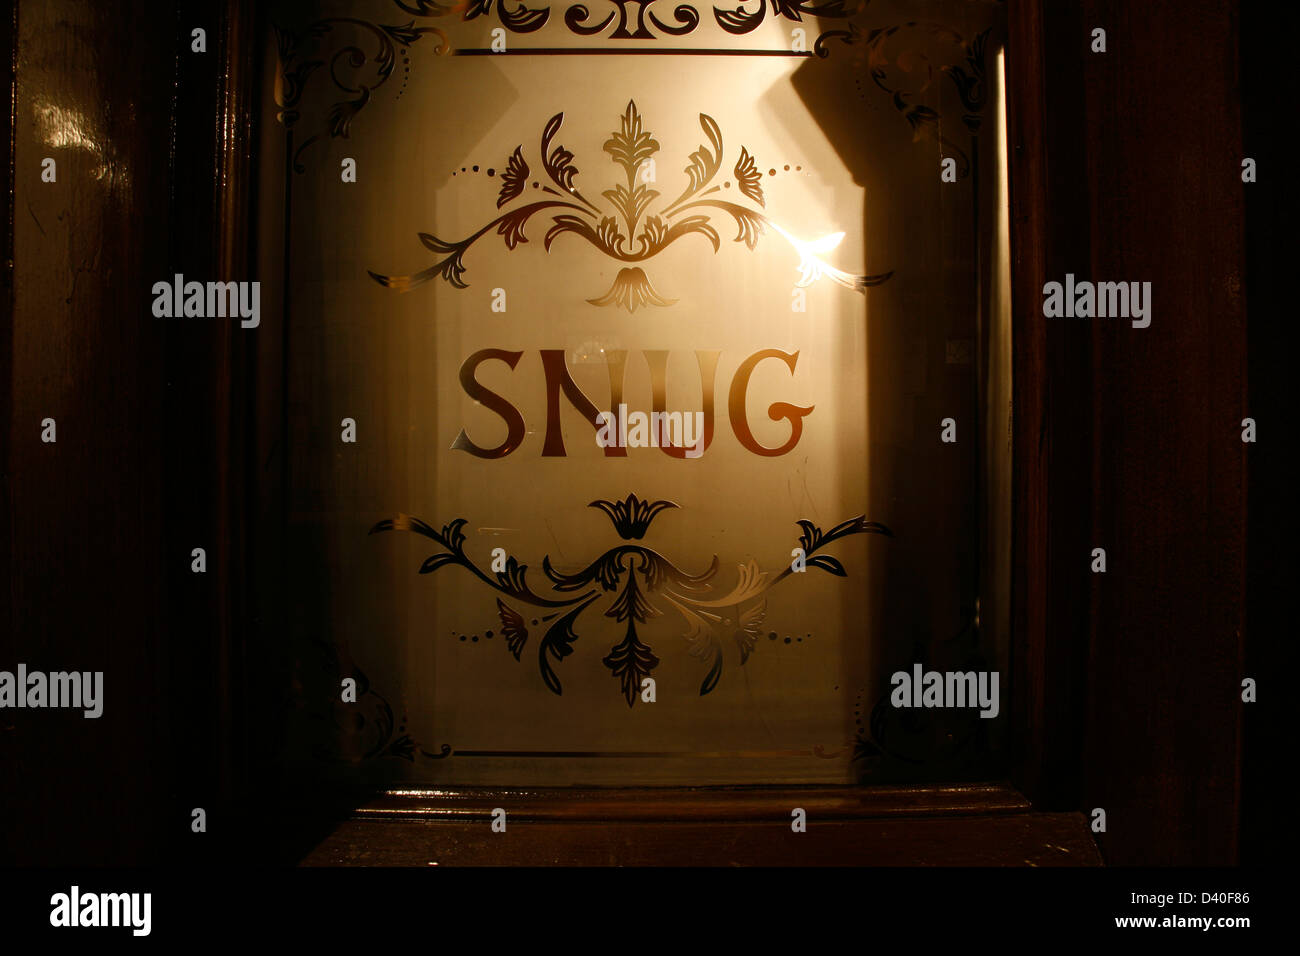 Etched glass window to the snug of the John Snow pub on Broadwick Street, Soho, London, UK - Stock Image